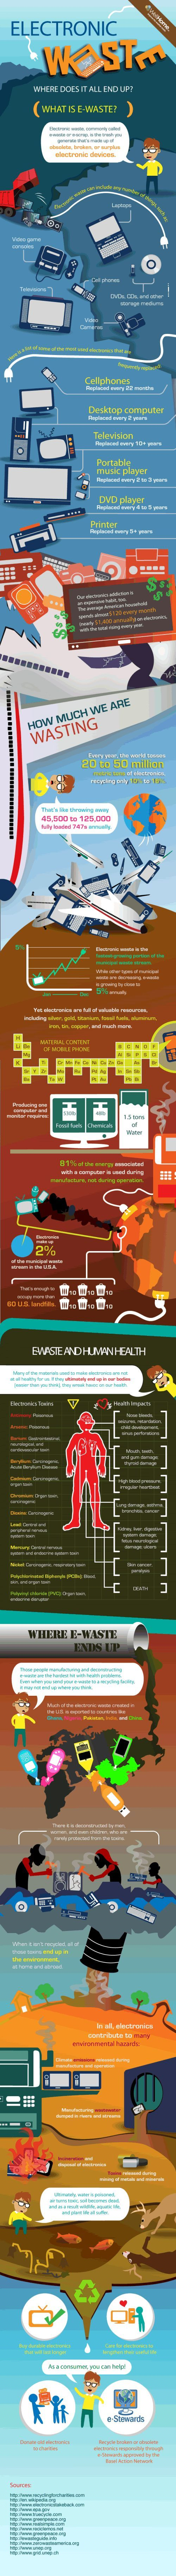 At least there is a positive contribution we can all make to the growing problem of e-waste | What happens to all the E-waste we produce? (scheduled via http://www.tailwindapp.com?utm_source=pinterest&utm_medium=twpin&utm_content=post111897779&utm_campaign=scheduler_attribution)